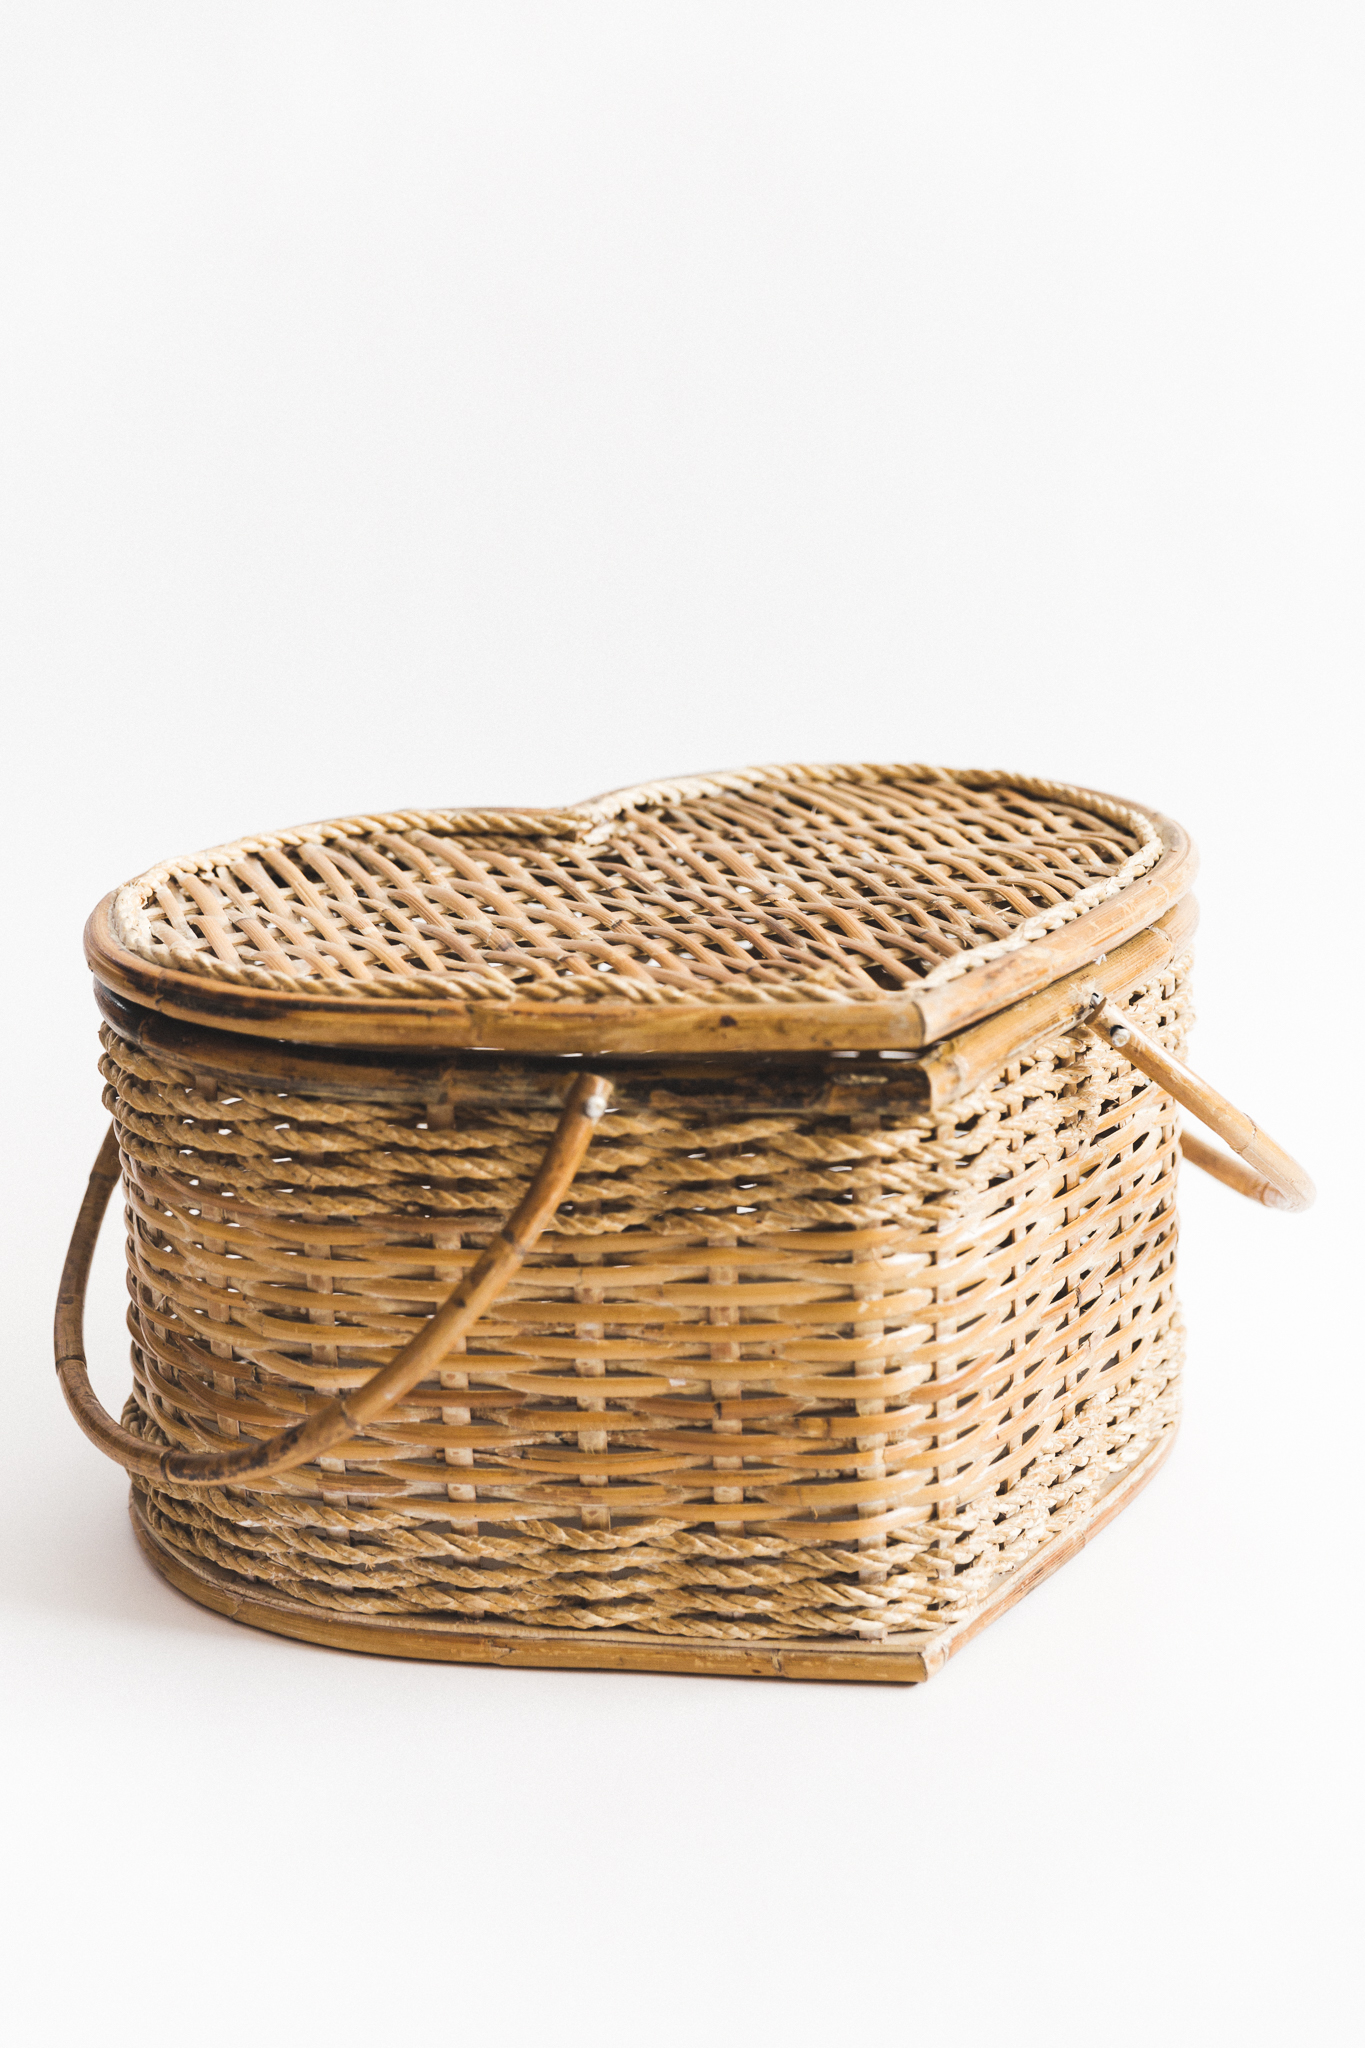 Wicker Heart Basket